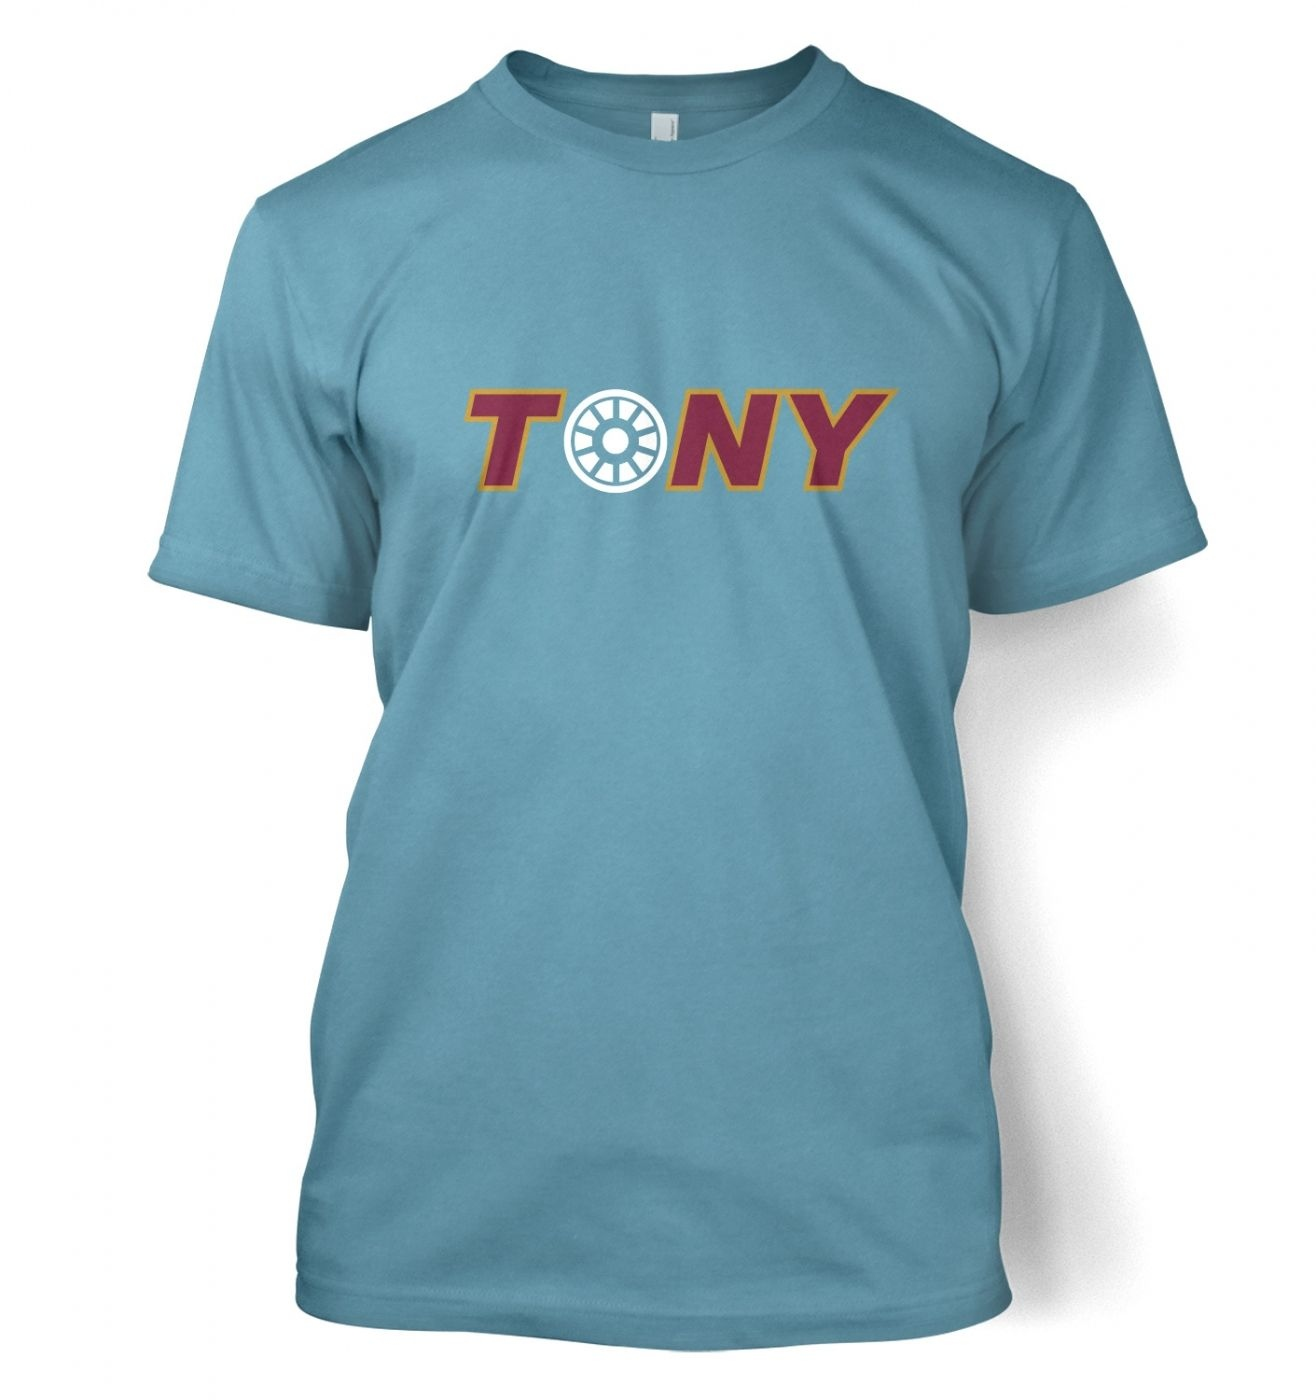 Tony Arc Reactor men's t-shirt